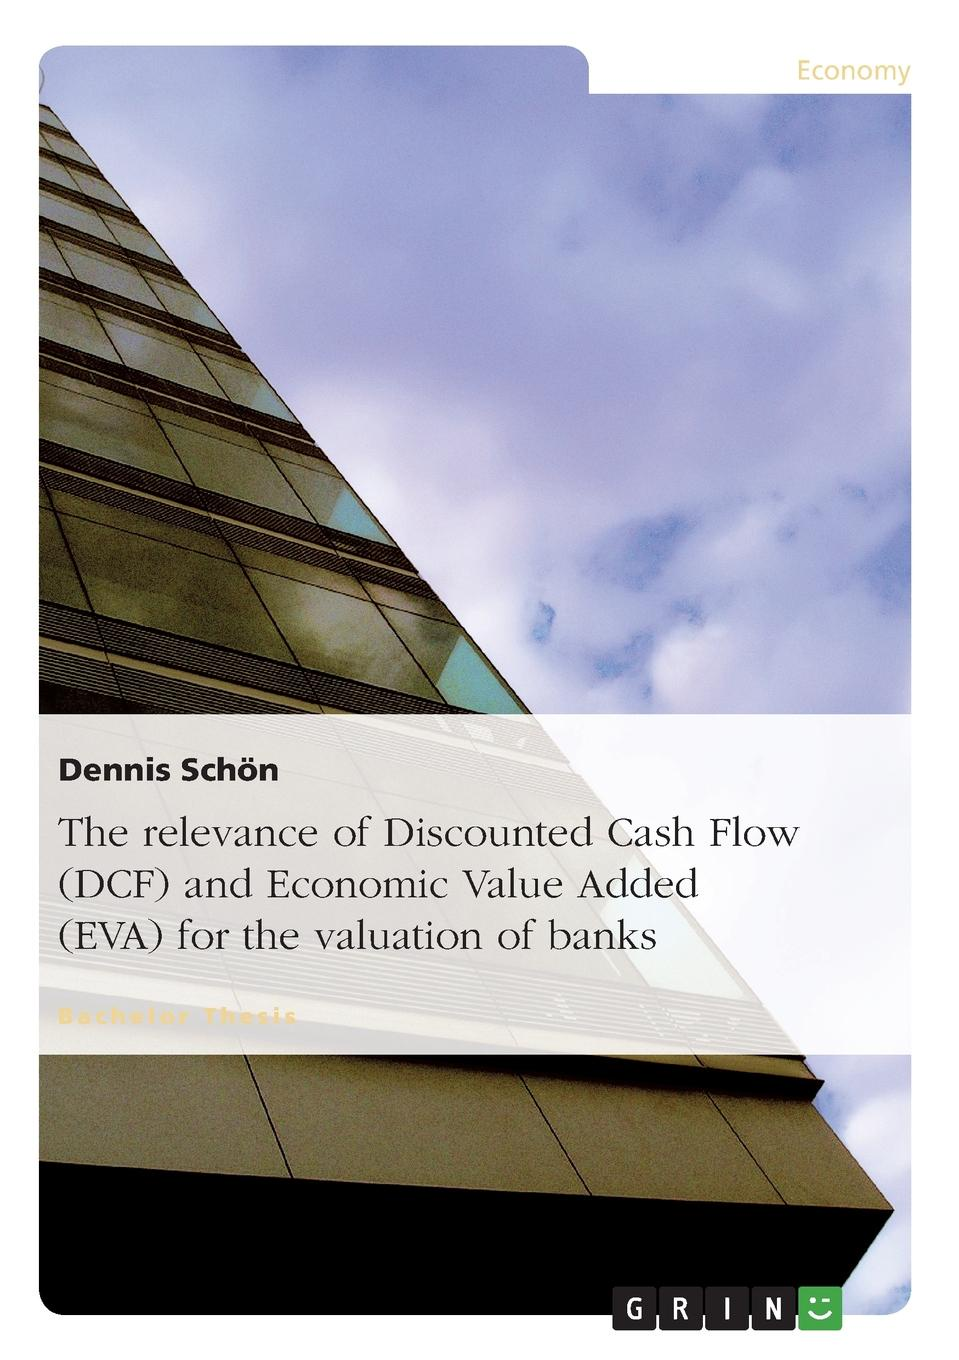 Dennis Schön The relevance of Discounted Cash Flow (DCF) and Economic Value Added (EVA) for the valuation of banks v jones rory the executive guide to boosting cash flow and shareholder value the profit pool approach